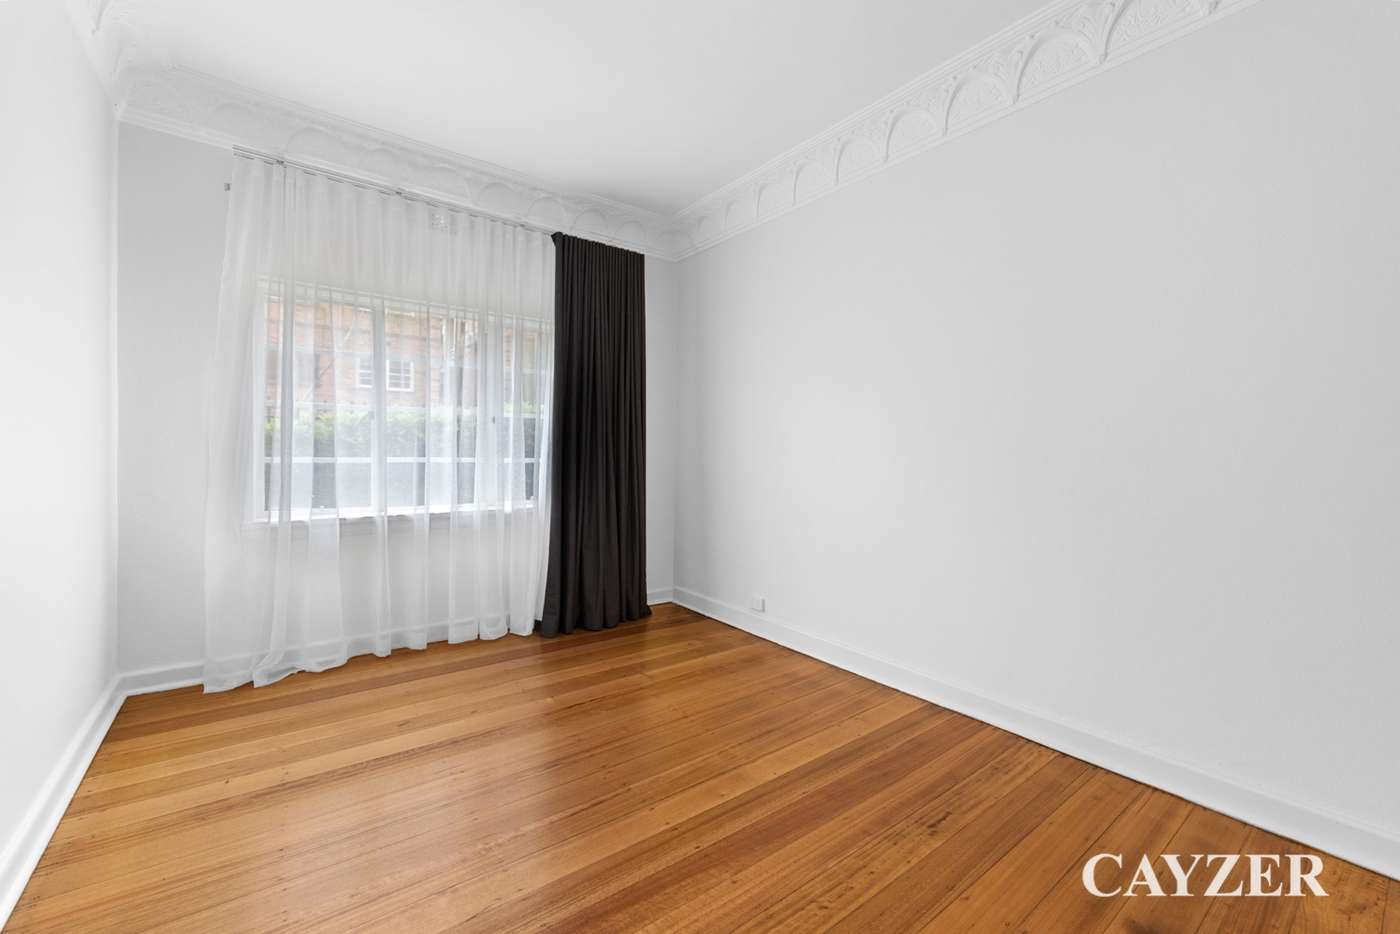 Fifth view of Homely apartment listing, 1/40 Eildon Road, St Kilda VIC 3182